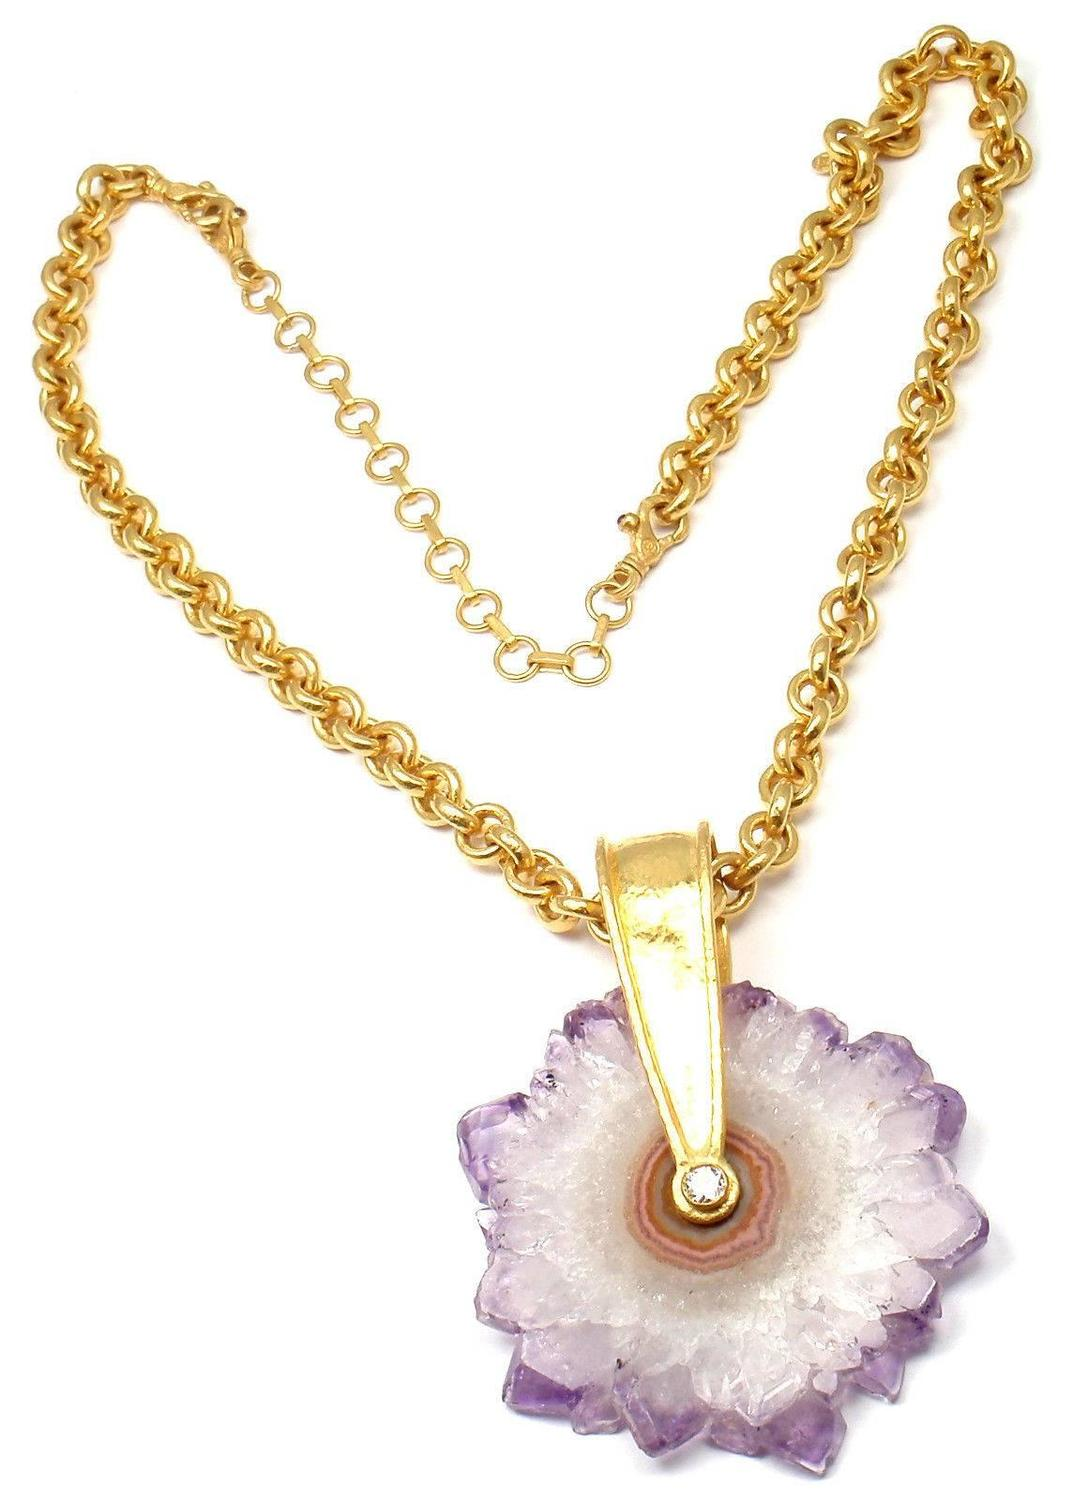 guhran jewelry gurhan large amethyst yellow gold pendant necklace 8940